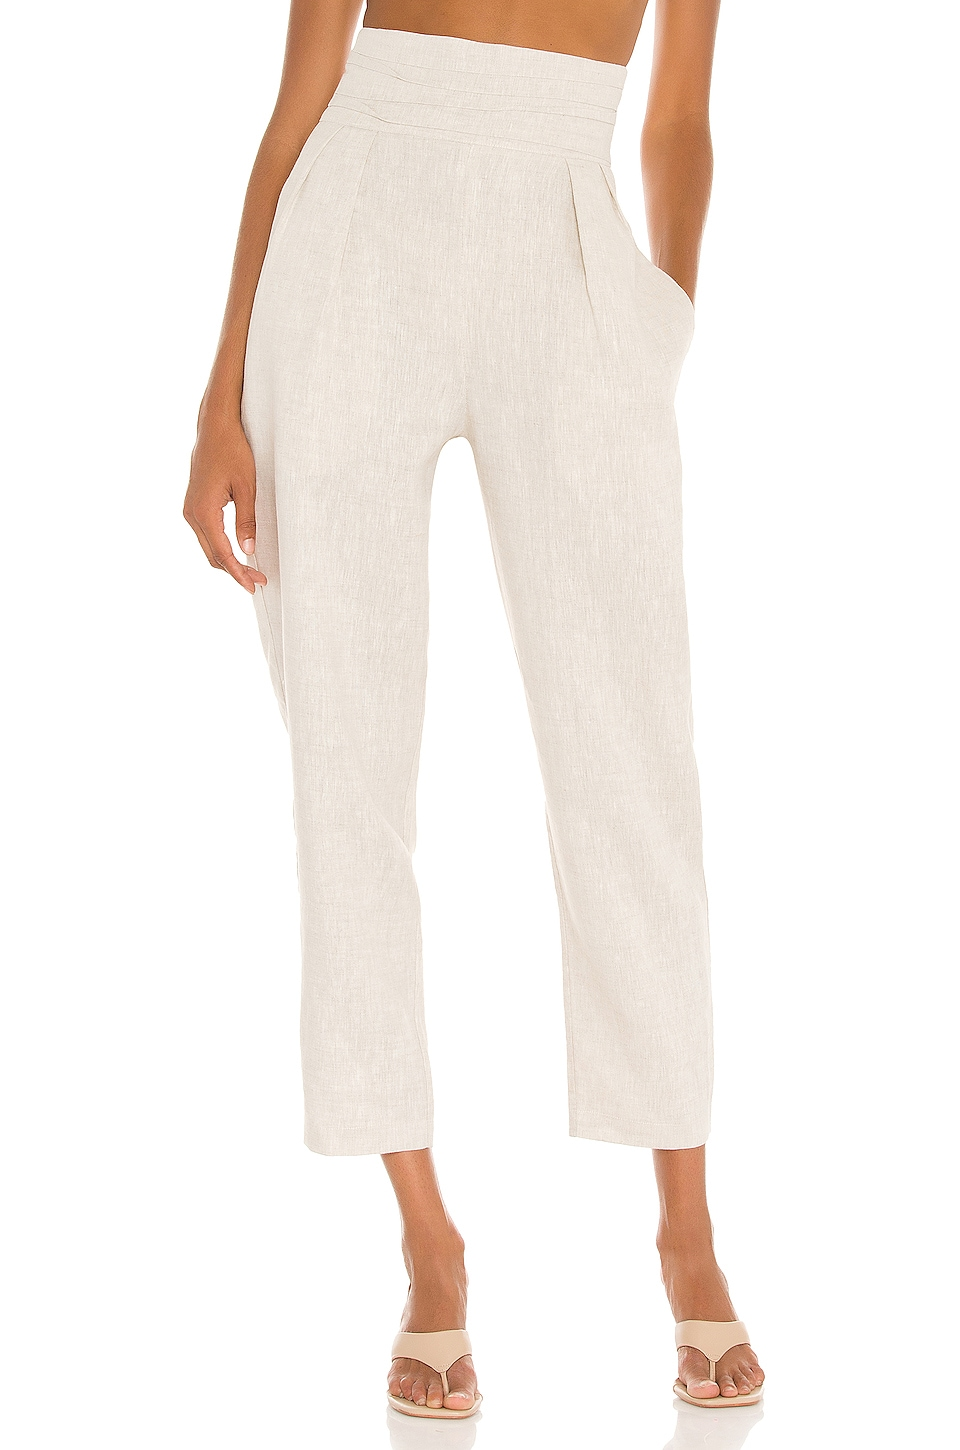 NONchalant Philipa High Waisted Pant in Beige